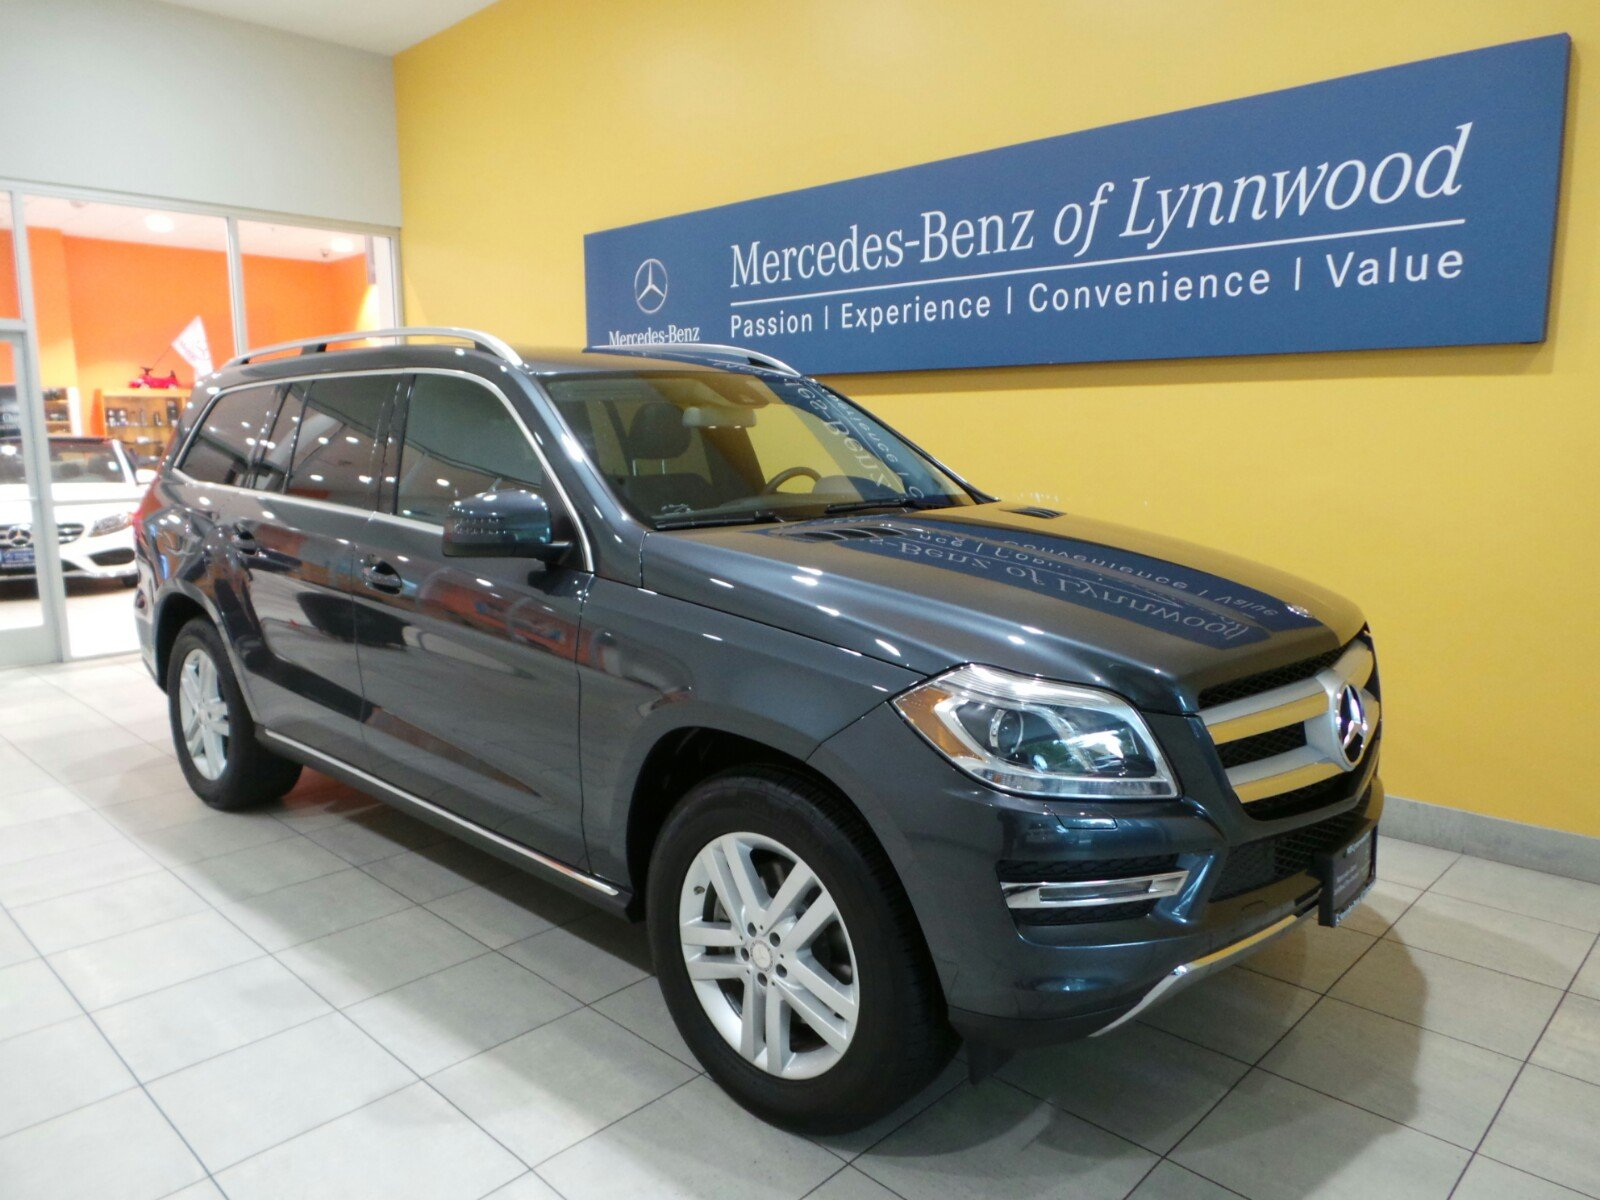 Pre owned 2014 mercedes benz gl class gl450 4matic suv in for Used mercedes benz gl450 4matic